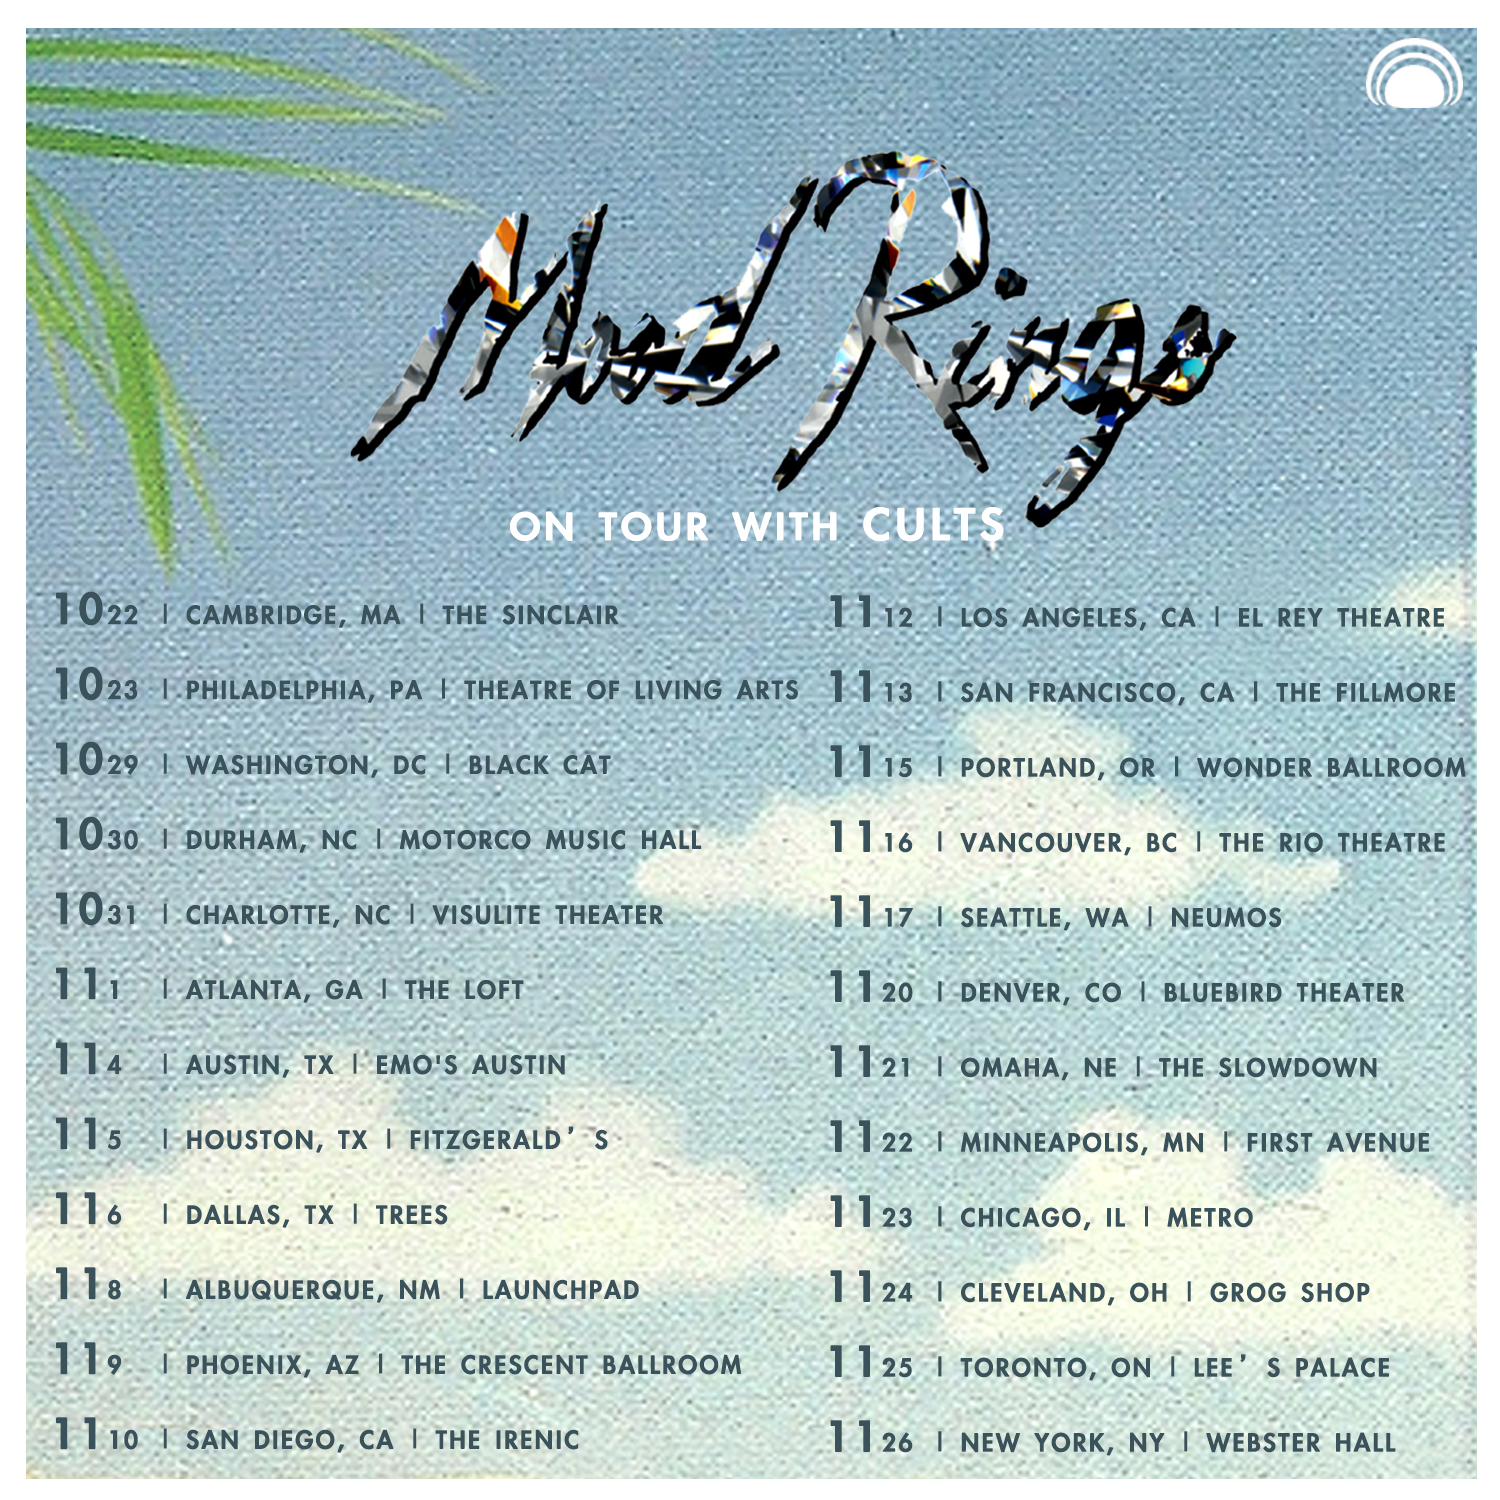 mood rings tour with cults - mexican summer